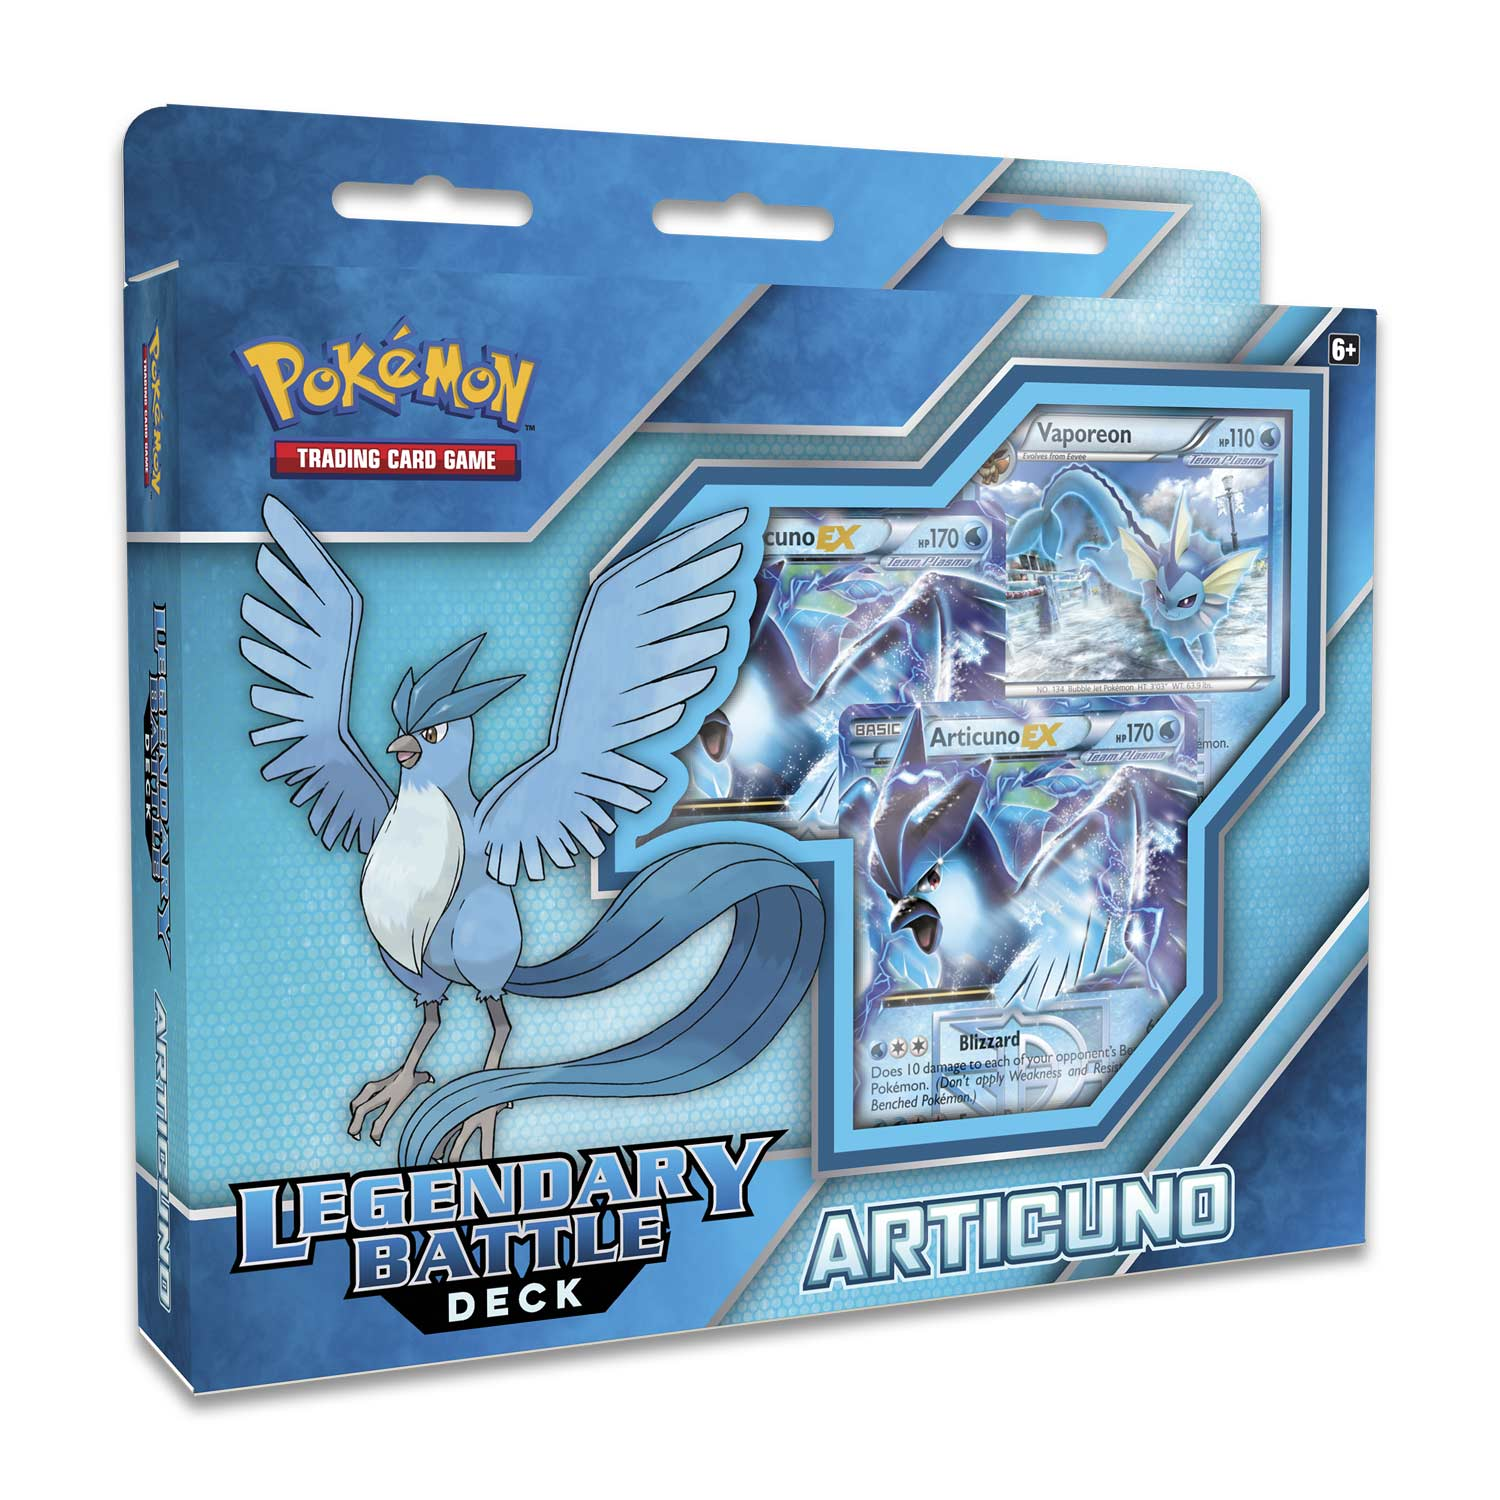 legendary battle deck articuno pokémon trading card game